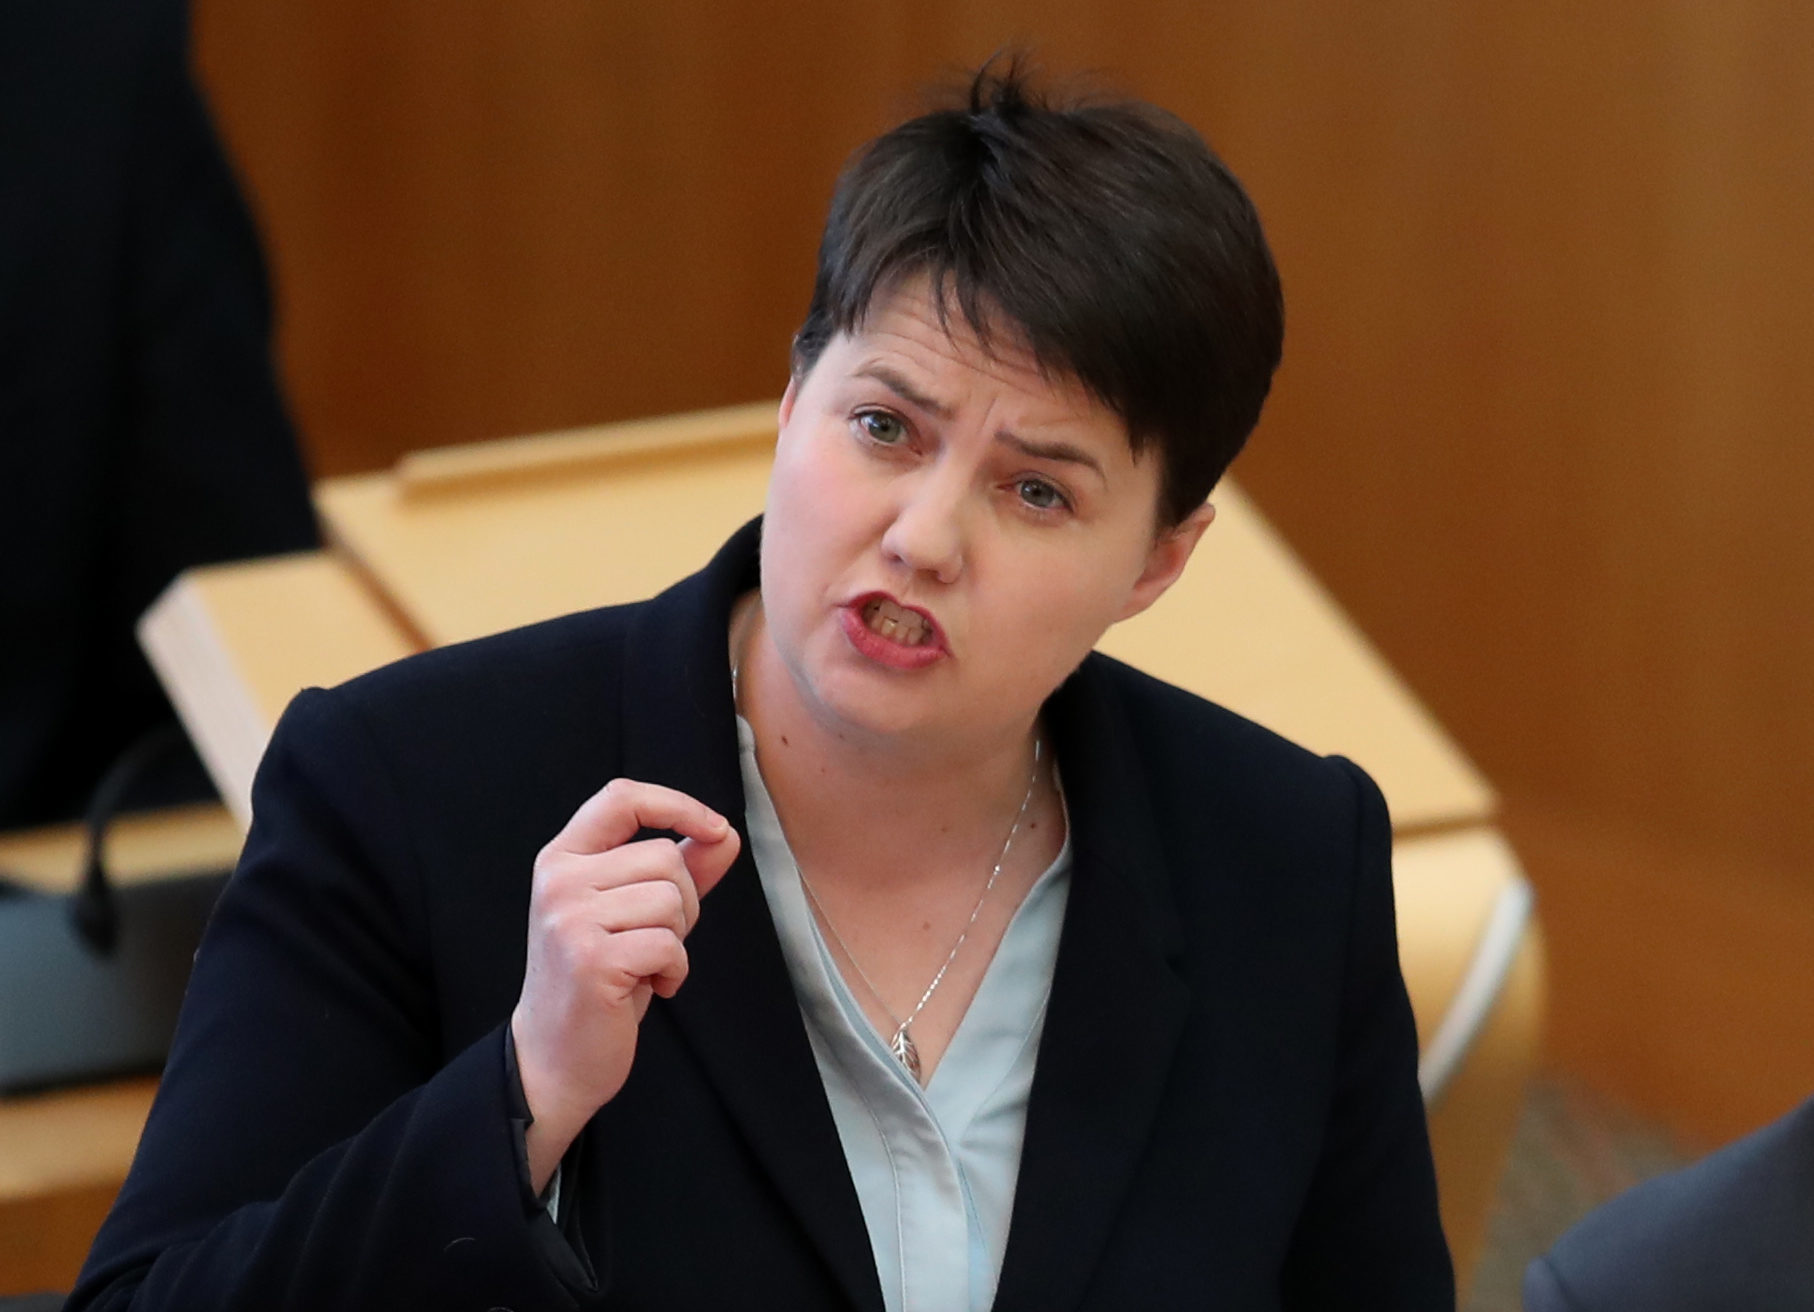 Scottish Conservative party leader Ruth Davidson during First Minister's Questions at the Scottish Parliament in Edinburgh (Jane Barlow/PA Wire)